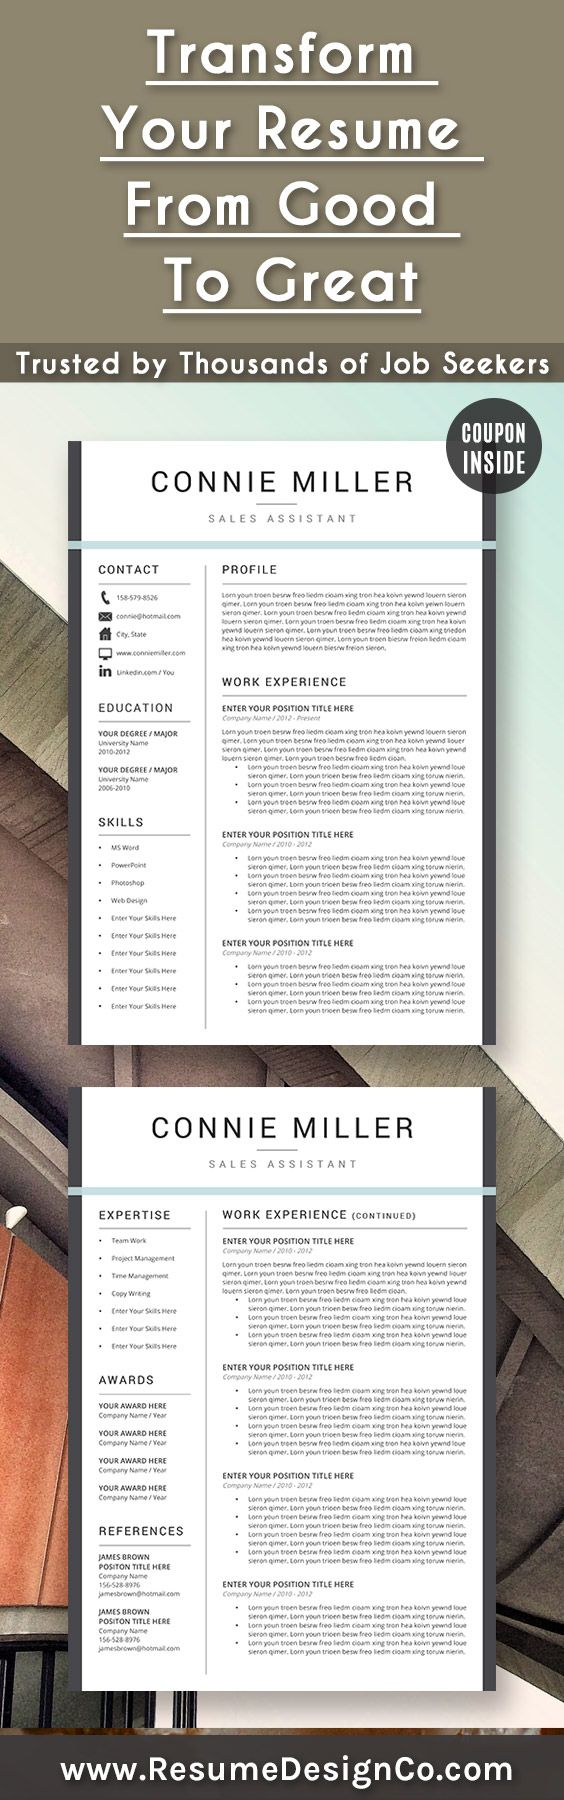 cover letter template for receptionist%0A Transform your resume from good to great  Trusted by thousands of job  seekers u